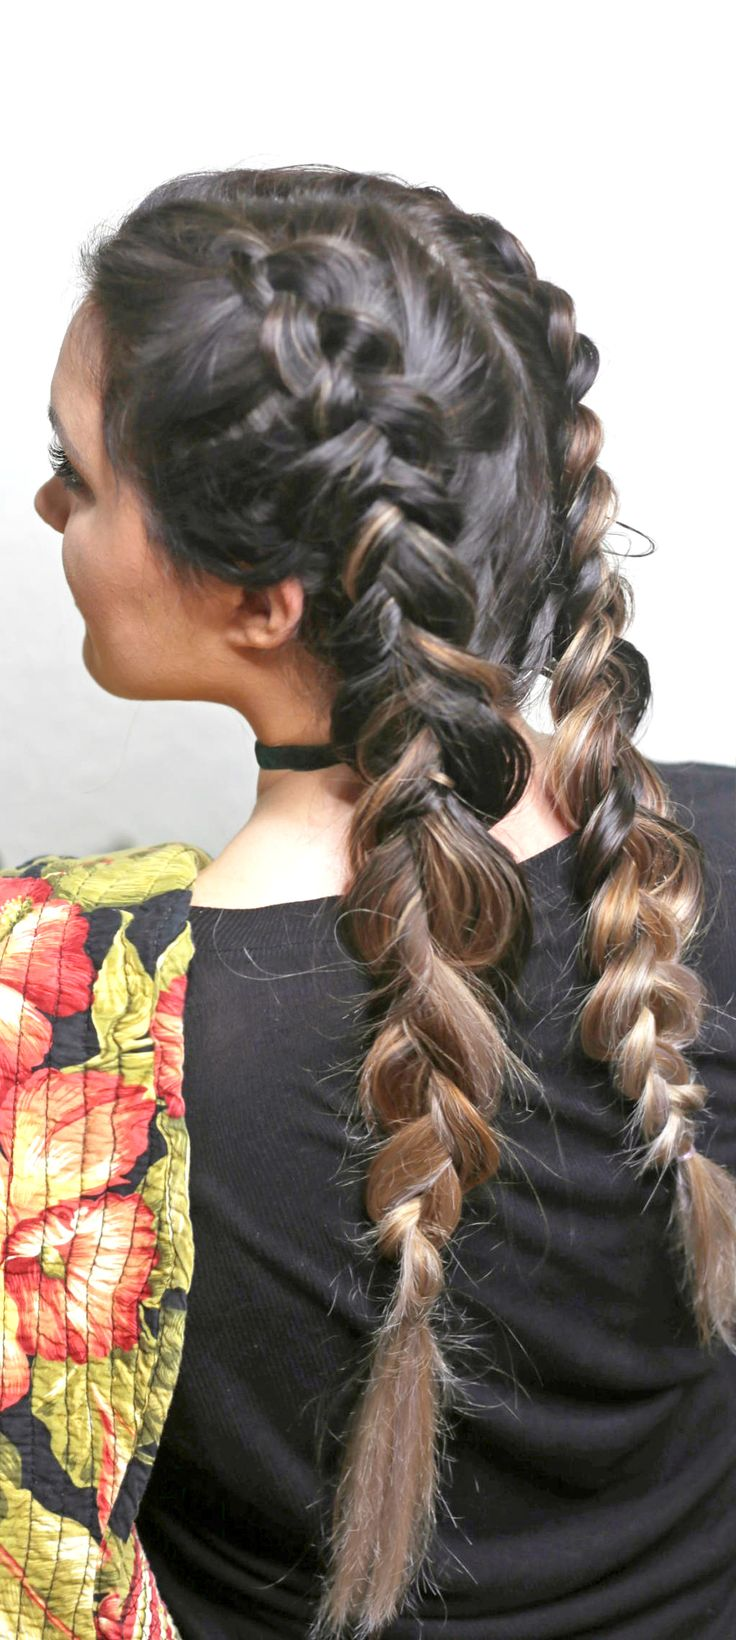 Learn how to create dutch braid ponytails with these easy step-by-step tutorial!